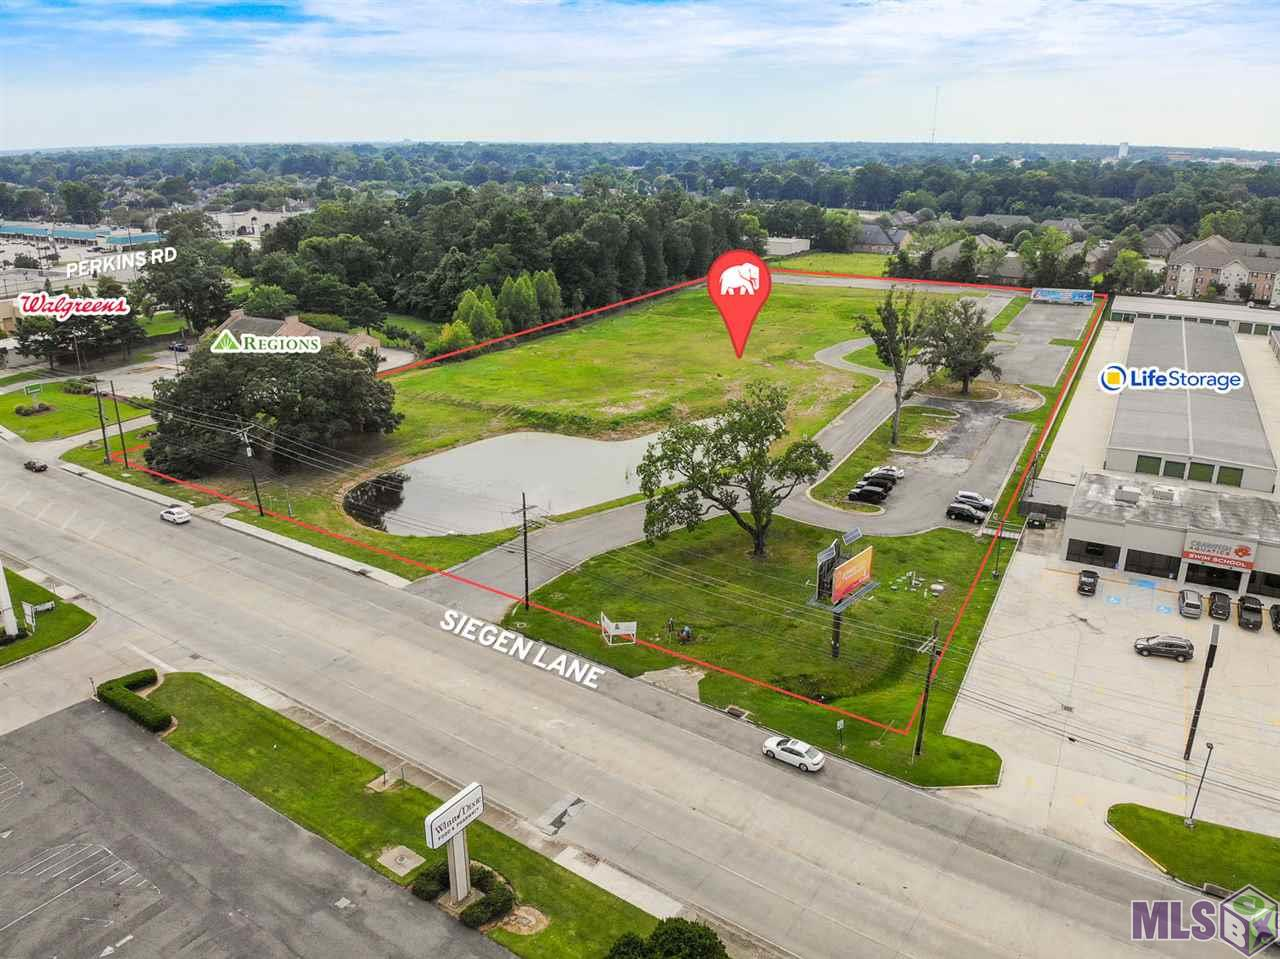 As one of the few remaining development tracts along Siegen Lane north of Perkins Road, this ±7.196 acre parcel presents an incredible opportunity for a new high-profile development. The lot not only features ±388 feet of frontage along Siegen Lane, it is already poised for development with infrastructure improvements in place.  Existing infrastructure includes an entrance drive, multiple parking lots, a drop-off drive adjacent to building pad, a retention pond, sewer treatment plant, and foundation piles within the building pad.  The property is zoned for Small Planned Unit Development (SPUD), which allows for a mix of land uses relating to the development of large tracts of land. Many development concepts are possible as permissible uses for SPUD zoning include most commercial uses ranging from A1 (Single-Family Residential) to M1 (Light Industrial).  The property is seen by ±23,600 vehicles per day and would offer excellent visibility to all passing traffic. This section of Siegen Lane is populated with retail, multifamily, and hospitality properties and is surrounded by multiple residential neighborhoods.  Interstate 10 and the large retail development Siegen Lane Marketplace sit just 1 mile north of the property. Perkins Road to the south offers easy access to Bluebonnet Blvd and Pecue Lane.  - Extensive site work and infrastructure already in place (fill, retention pond, drives, parking, sewer, foundation piles, etc.) - Excellent visibility and one of the last large development tracts remaining in area - Ideal for medical, senior living, school, professional office, or multifamily